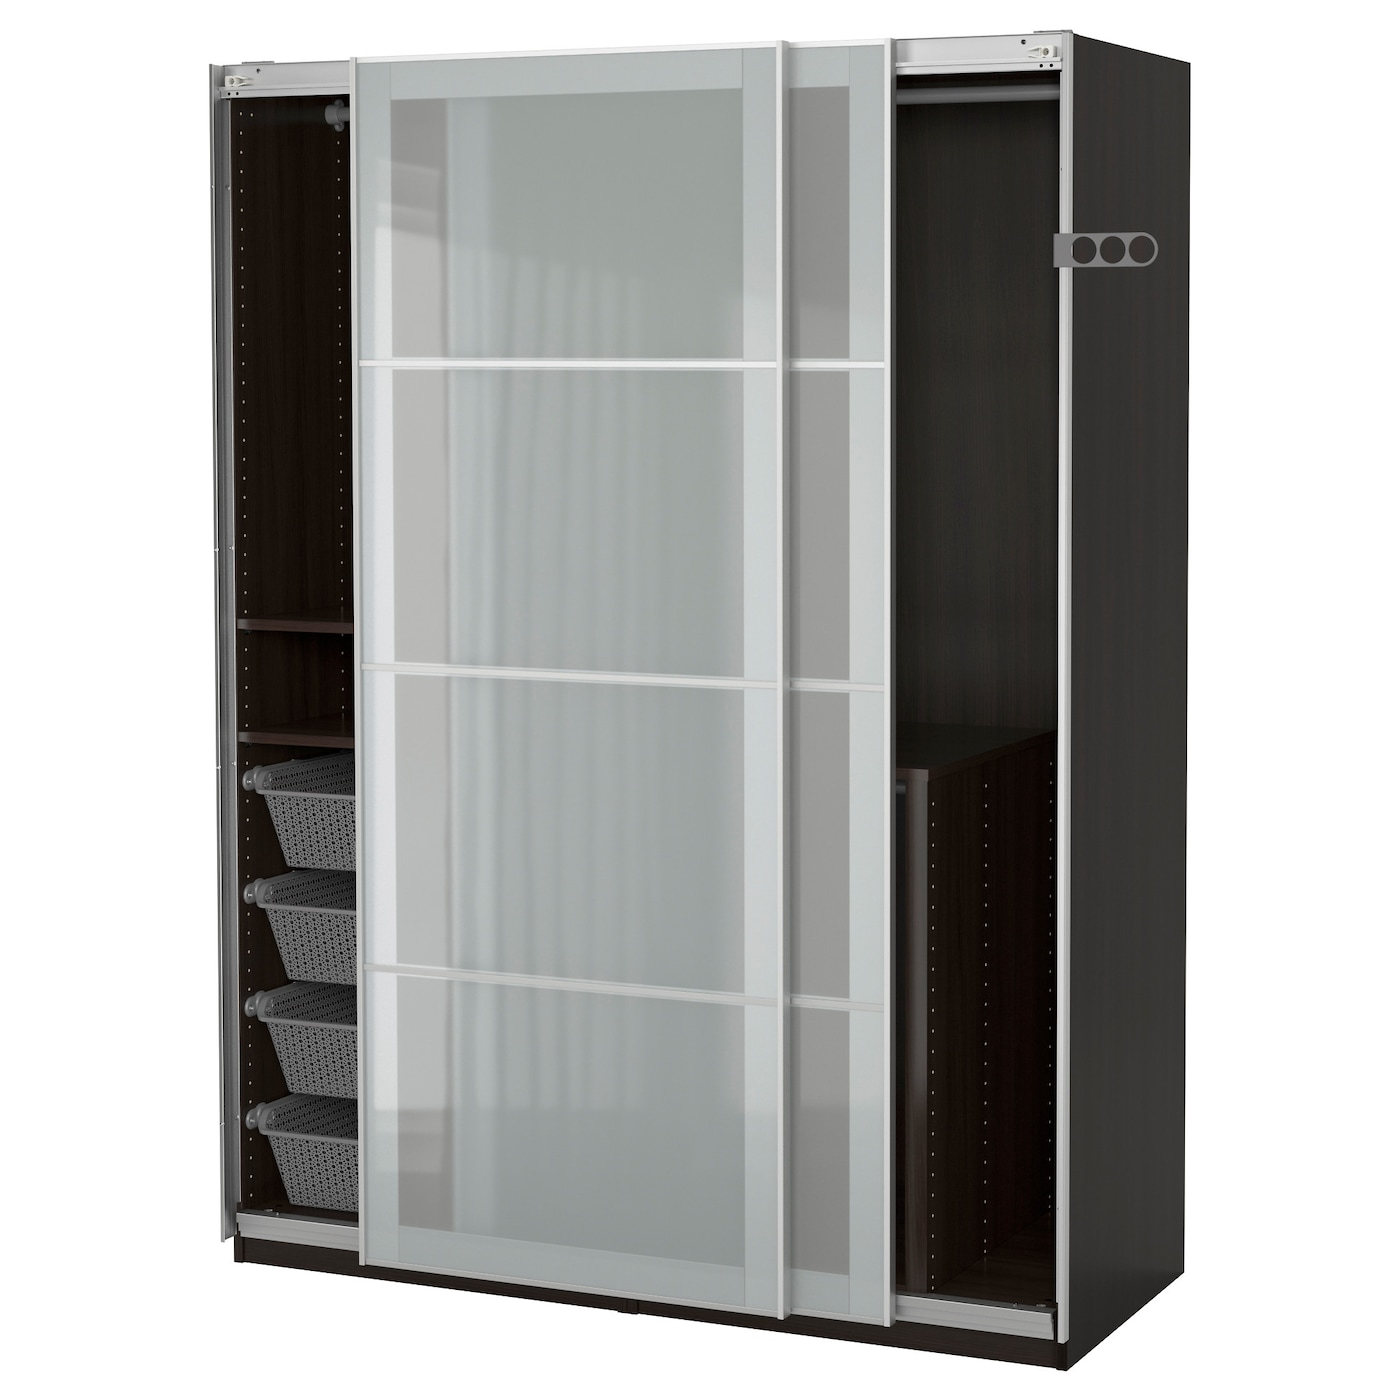 pax wardrobe black brown sekken frosted glass 150x66x201 cm ikea. Black Bedroom Furniture Sets. Home Design Ideas